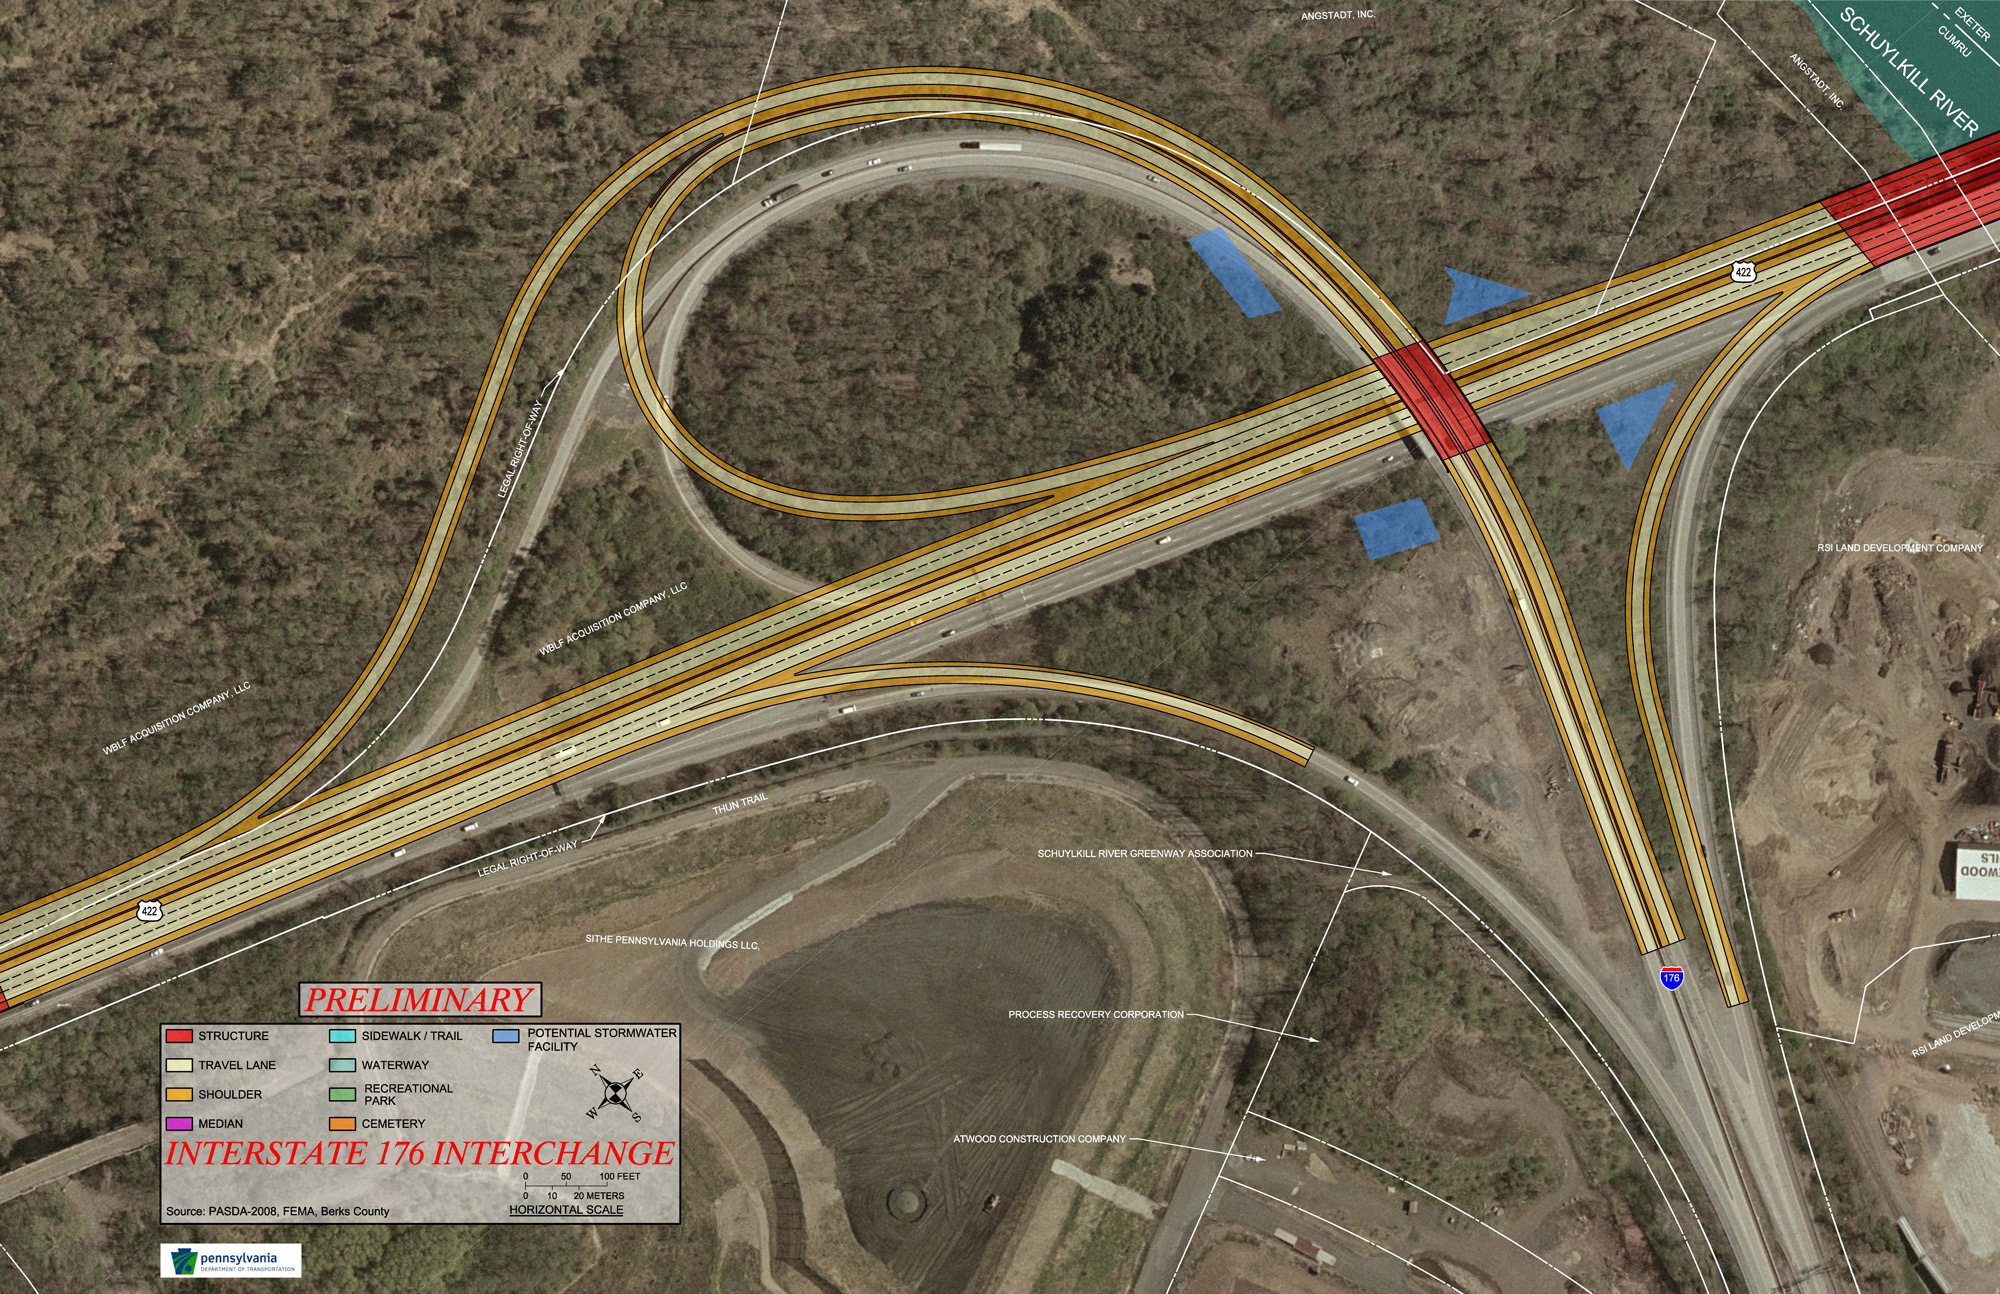 Highway Improvement Alternatives | 422 Westshore Bypass Project